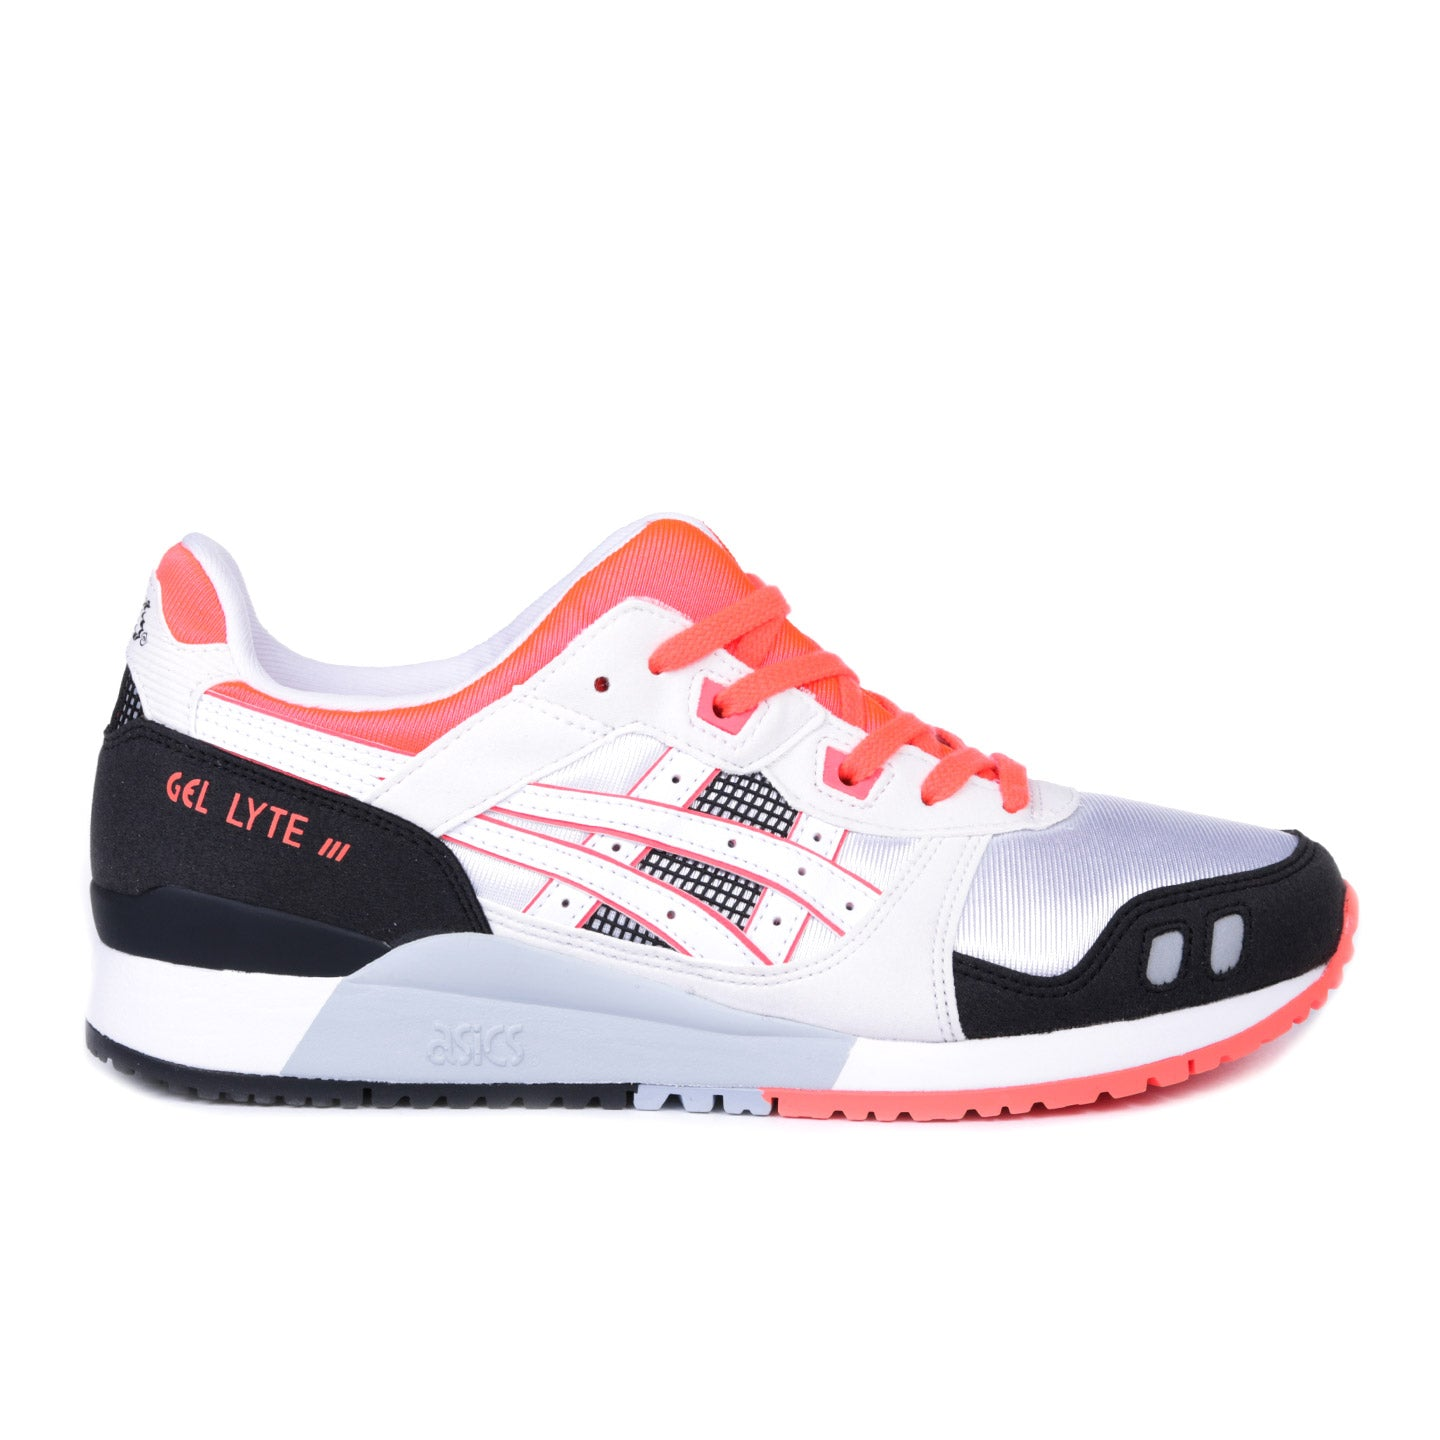 ASICS GEL-LYTE III OG WHITE / FLASH CORAL